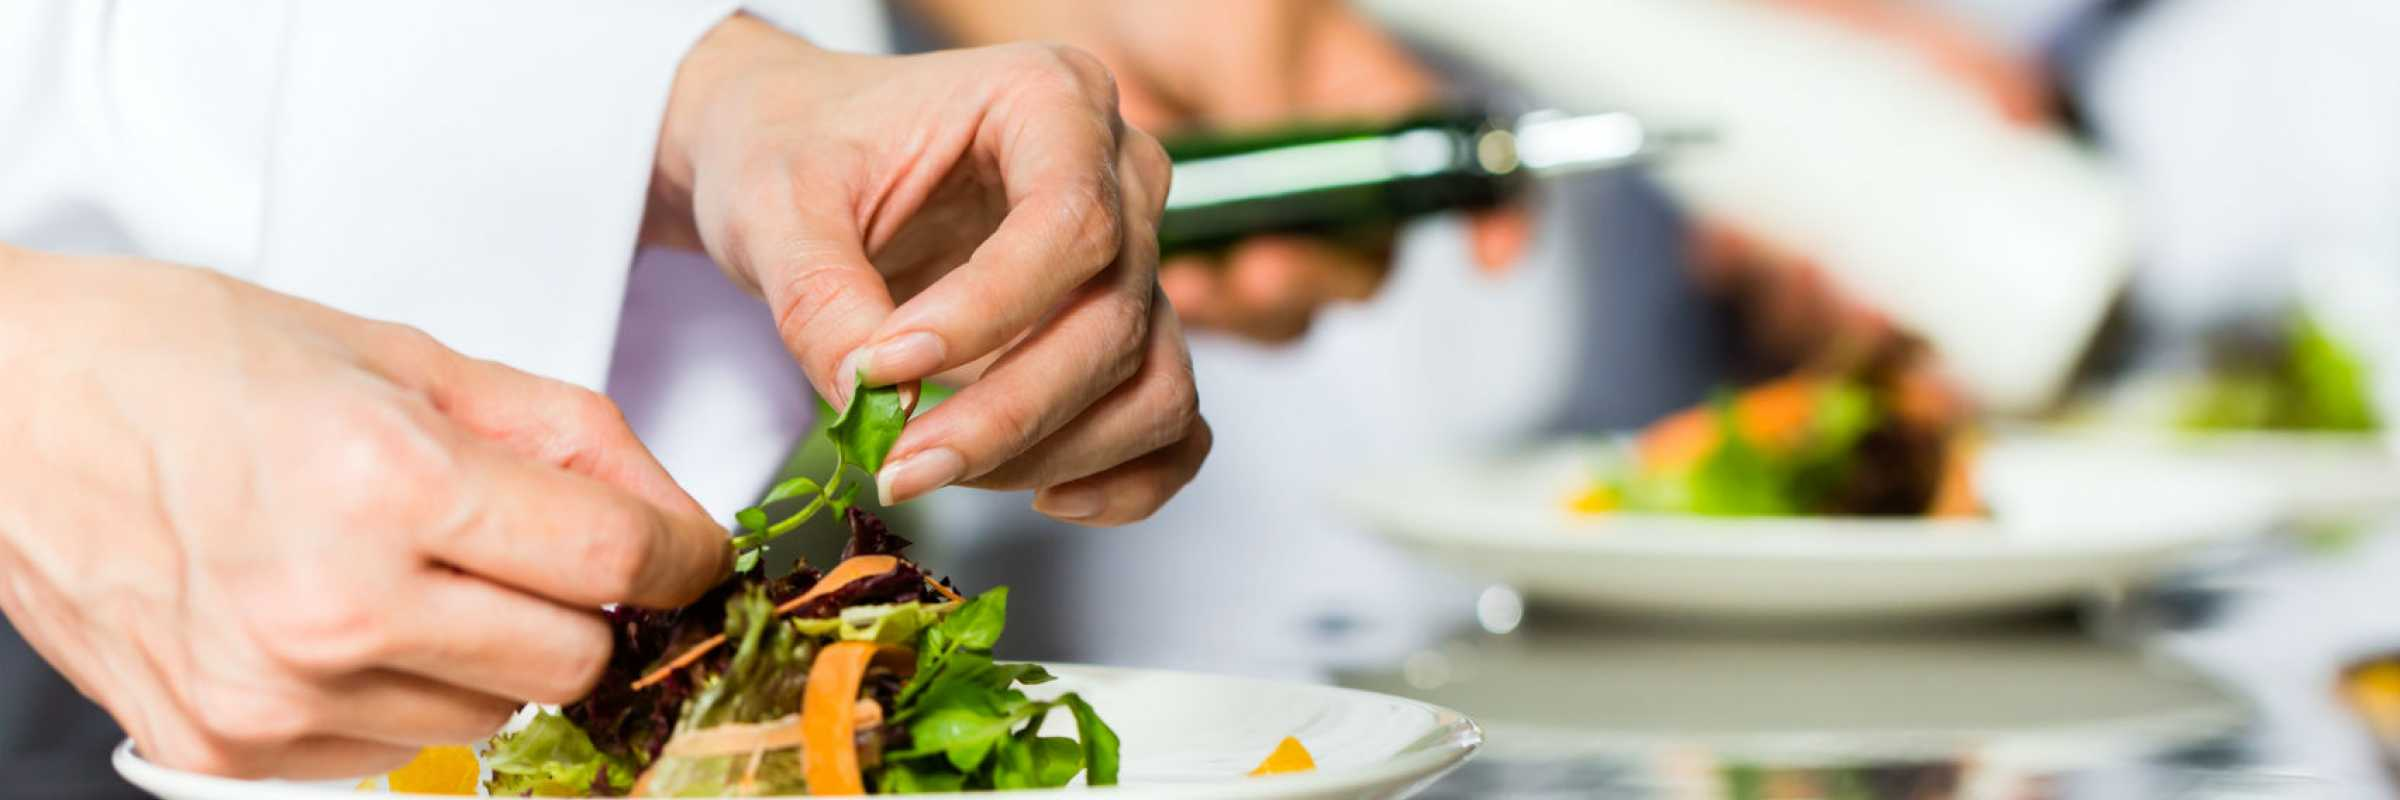 Challenges in the catering industry; translating science into practical solutions